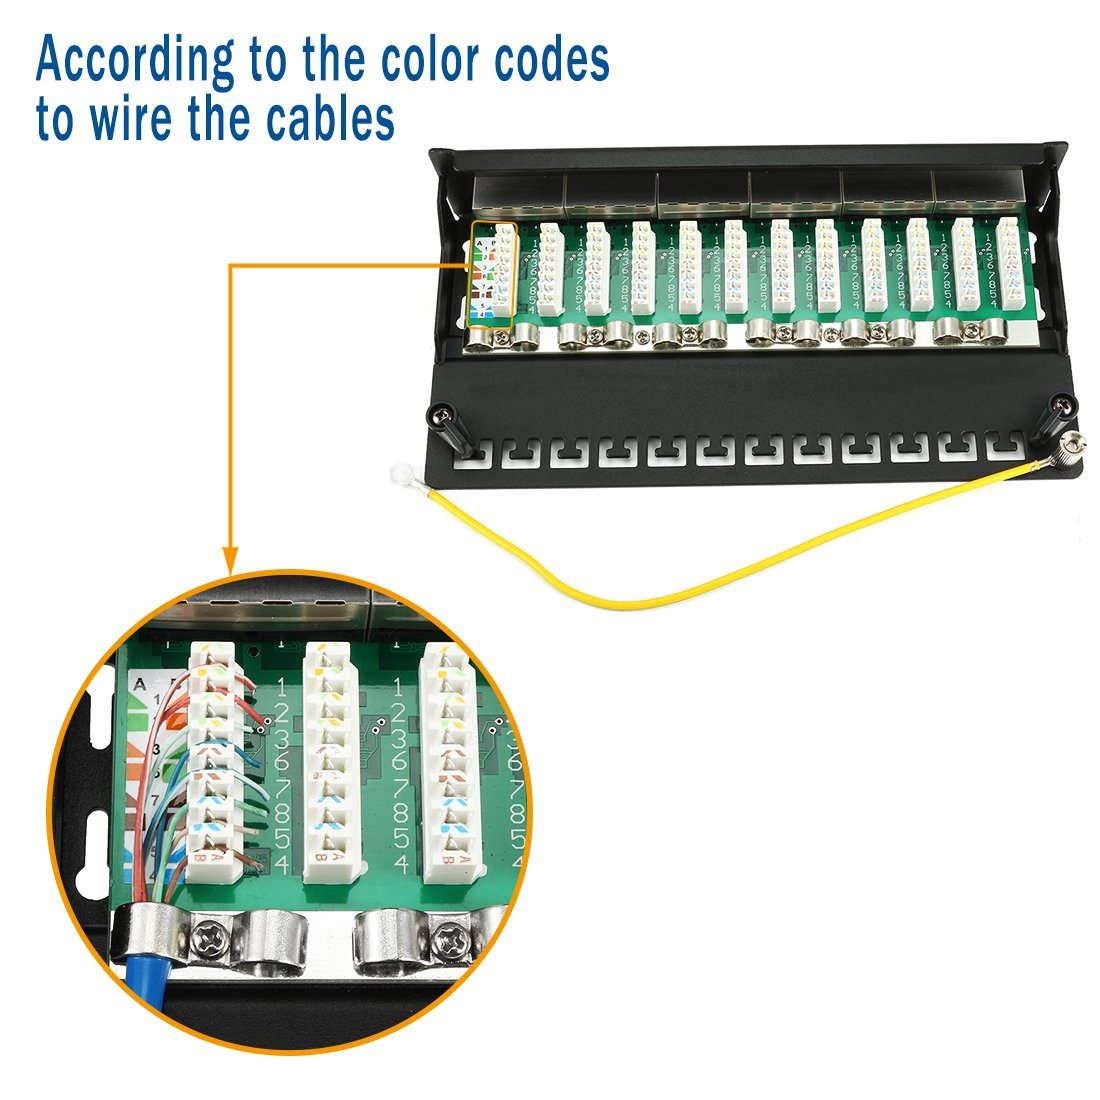 Uxcell 12 Port Ethernet Shielded 110 Type 1u T568a T568b Wiring Diagram Standard 19 Rackmount Black Cat6 Patch Panel Computers Accessories